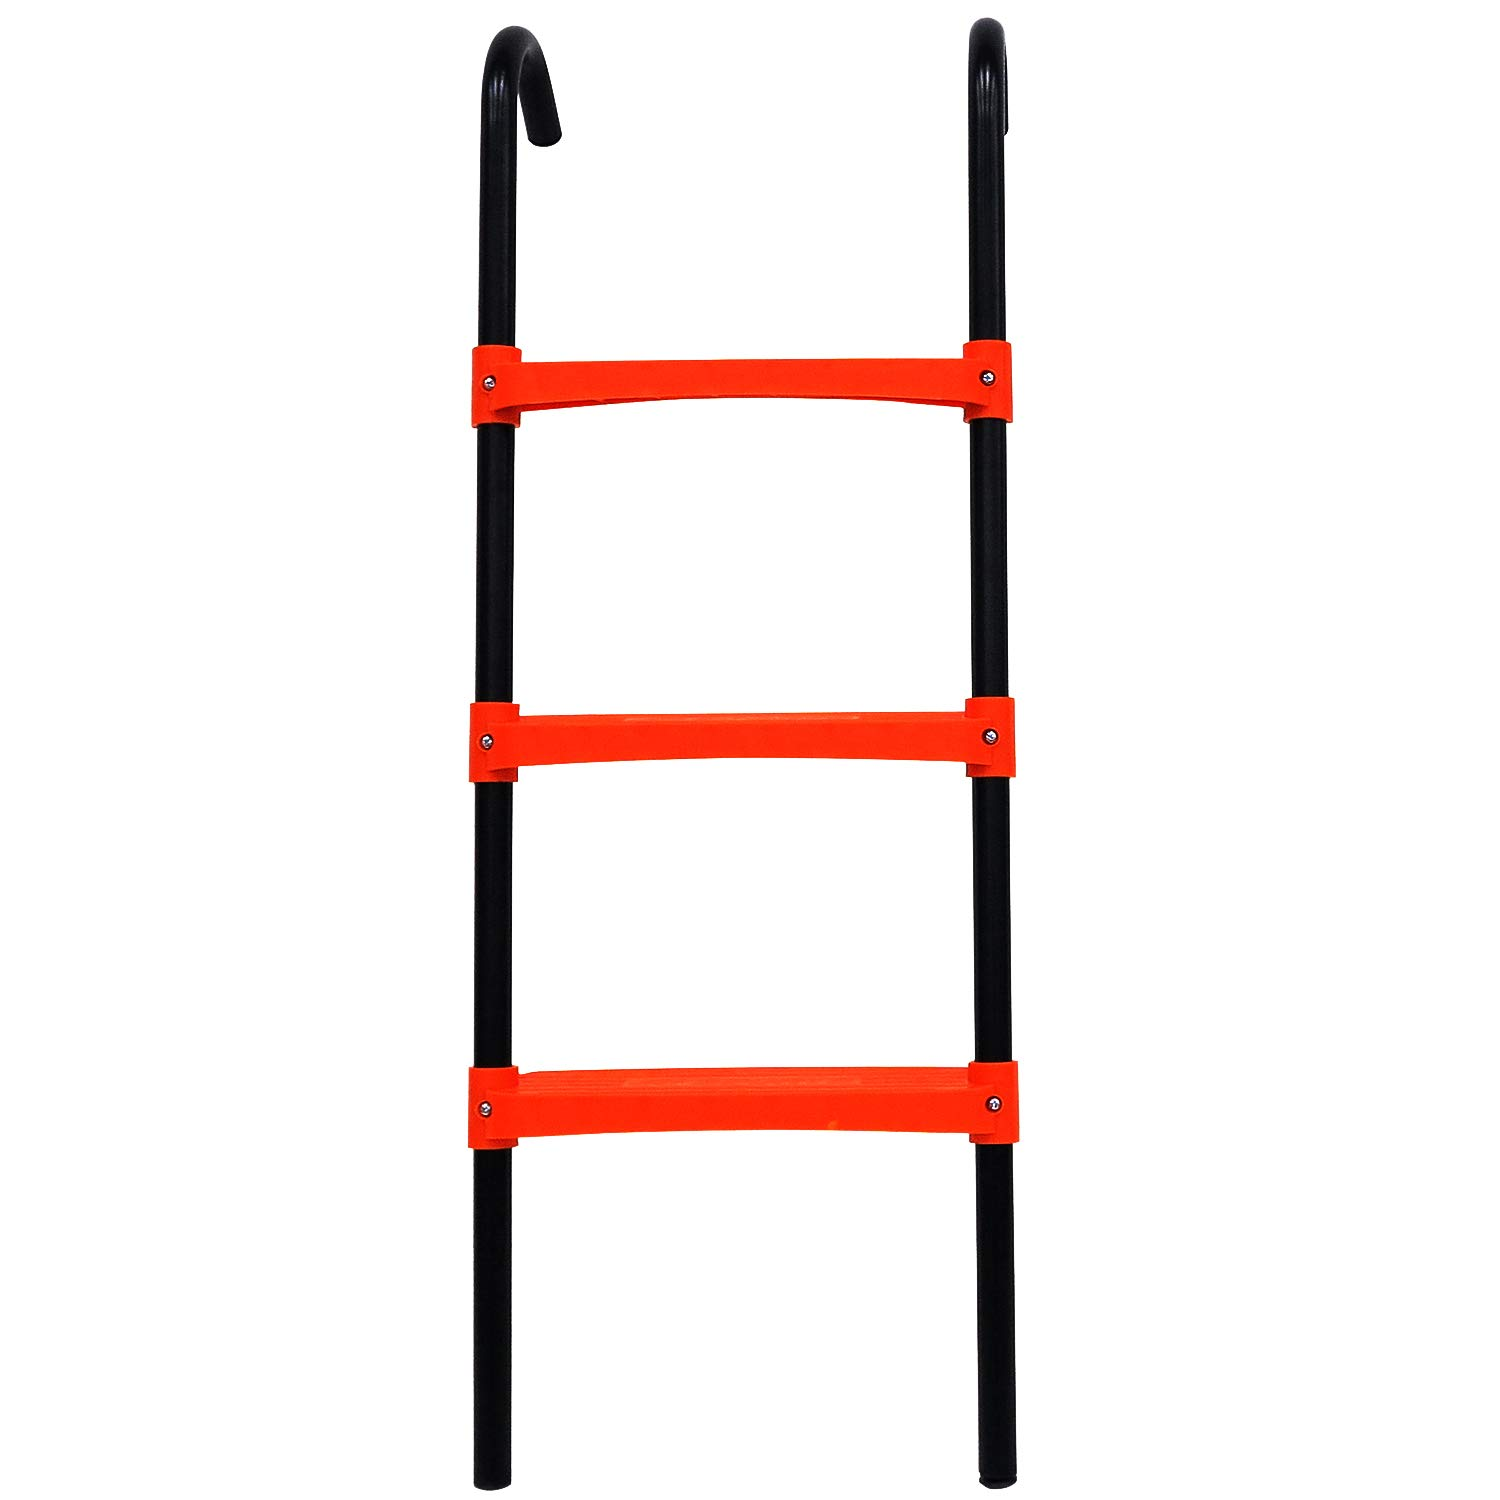 JUMP POWER Trampoline Ladder - 3 Step Wide Universal Trampoline Ladder for Kids - Trampoline Accessories - Powder Coated & UV Treated Trampoline Steps for All Weather Exposure - Sturdy & Safe Design